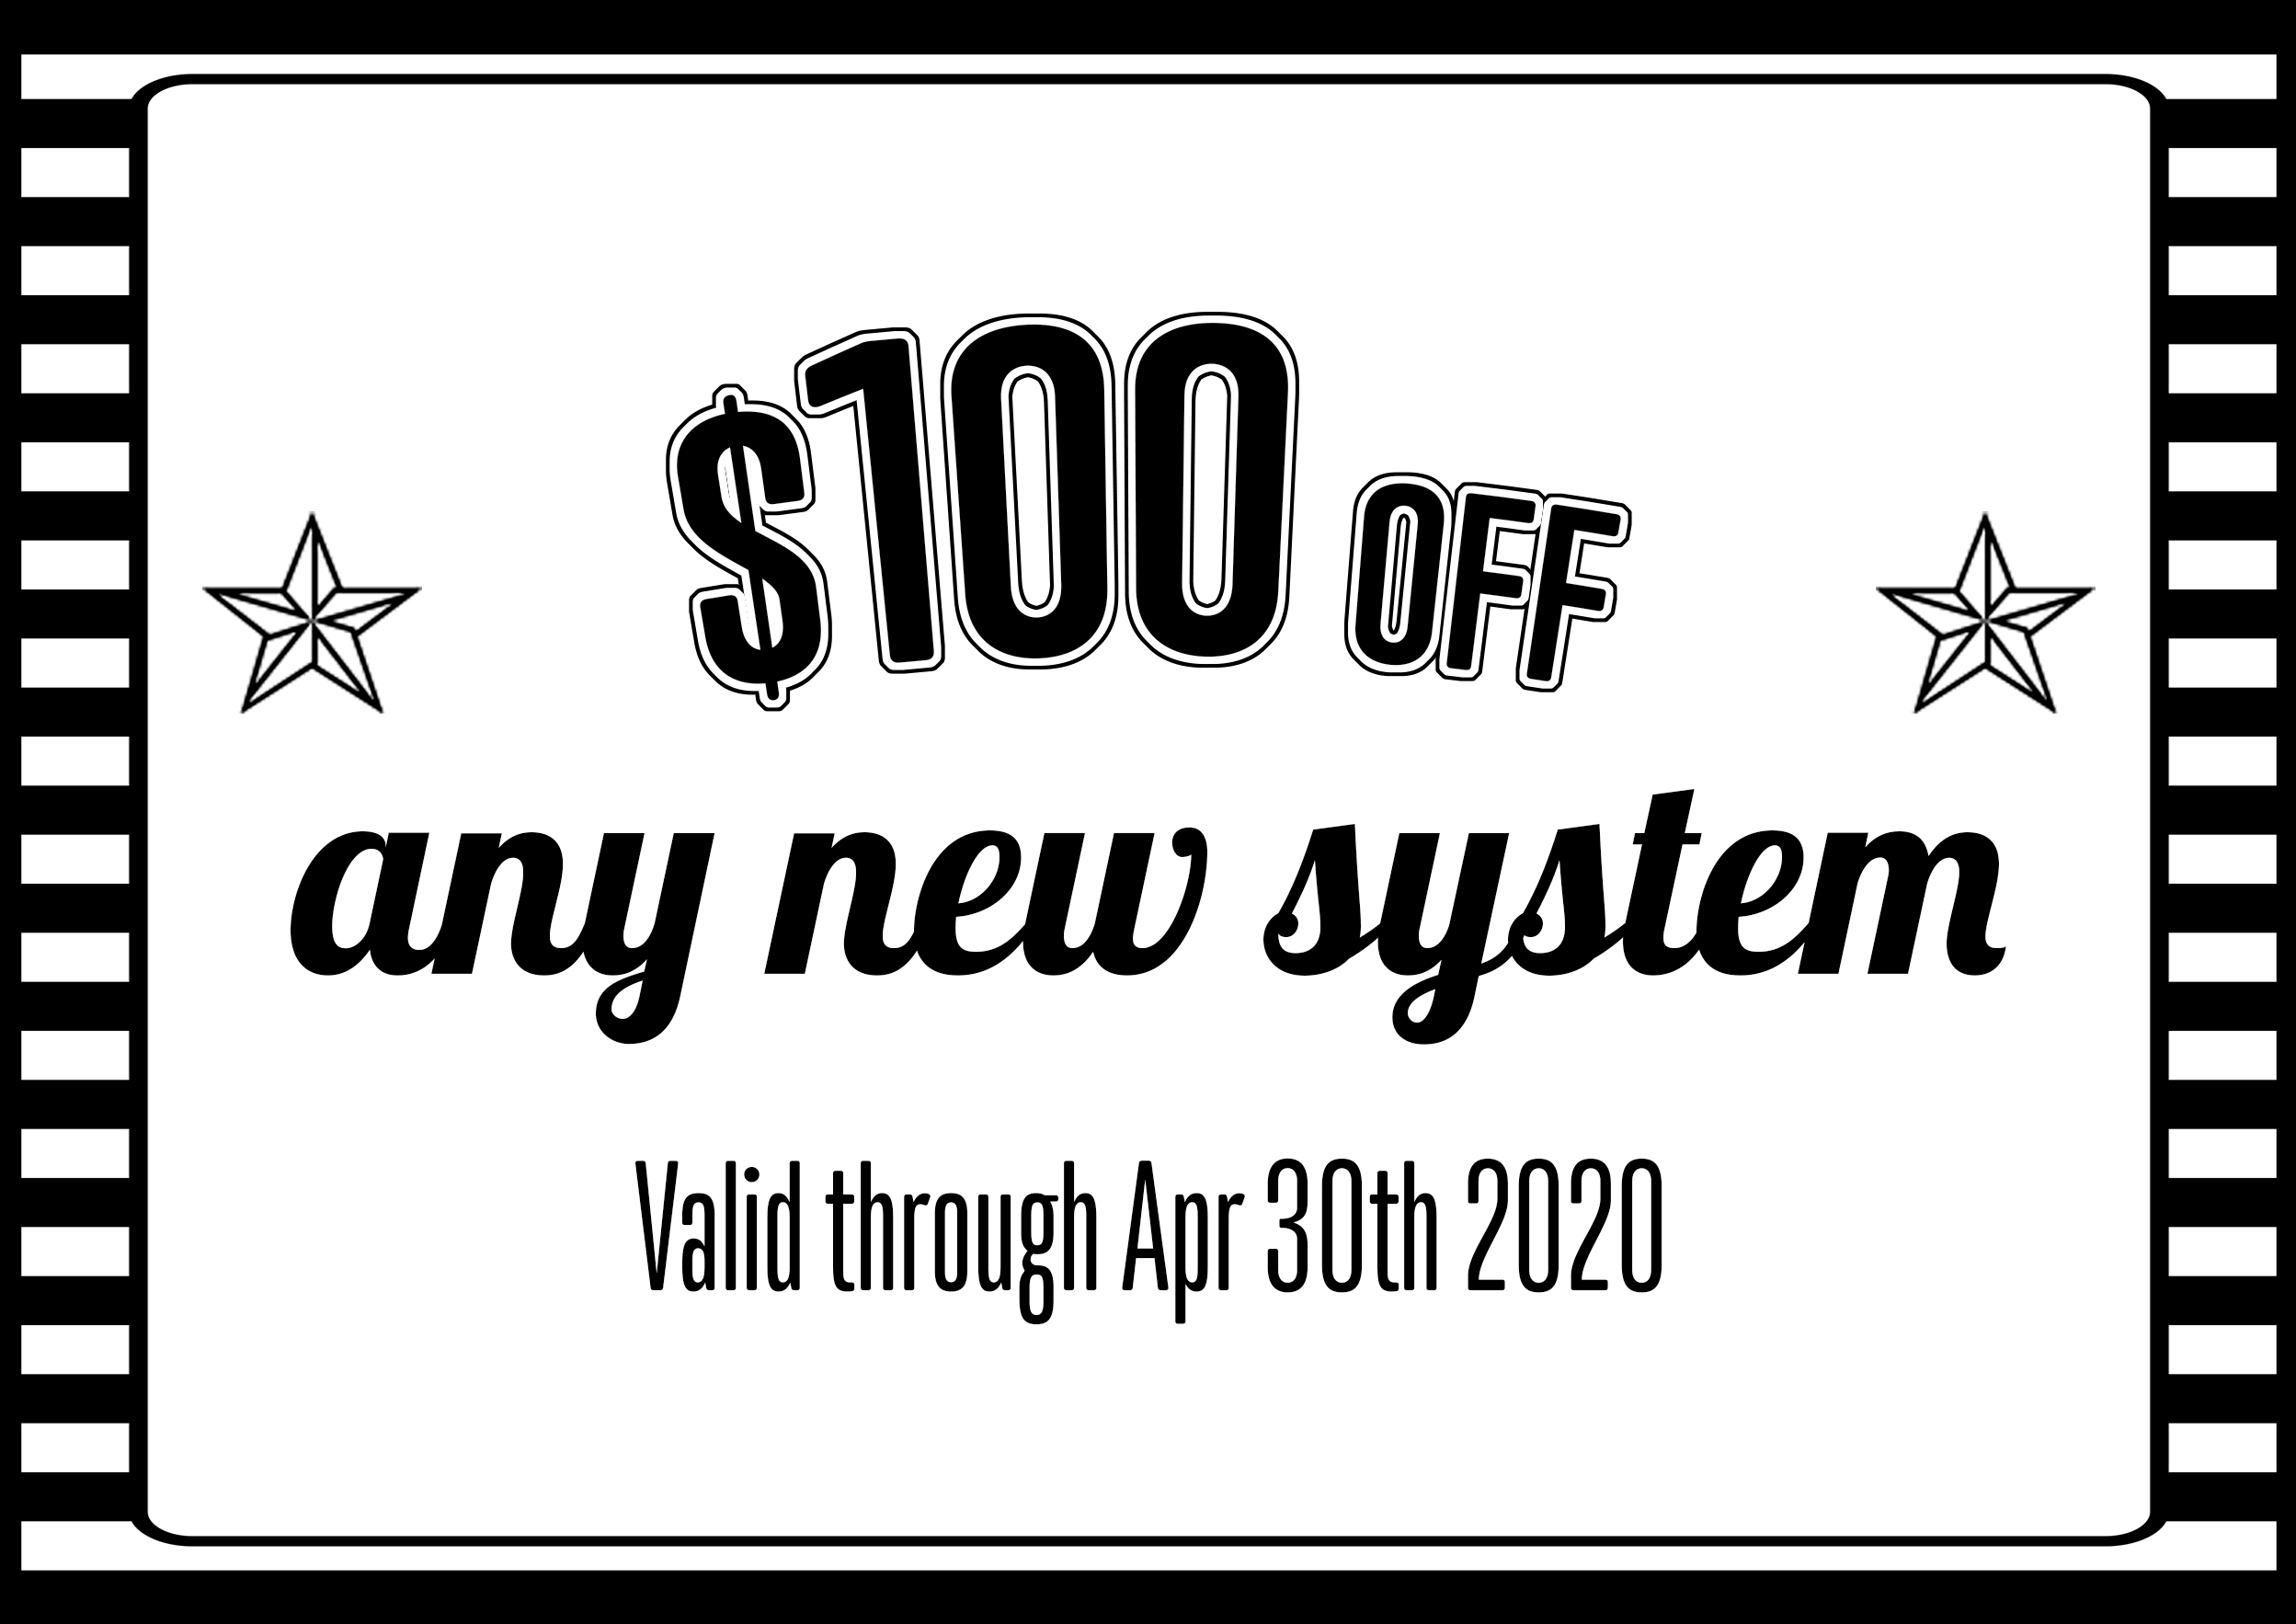 $100 off new system coupon